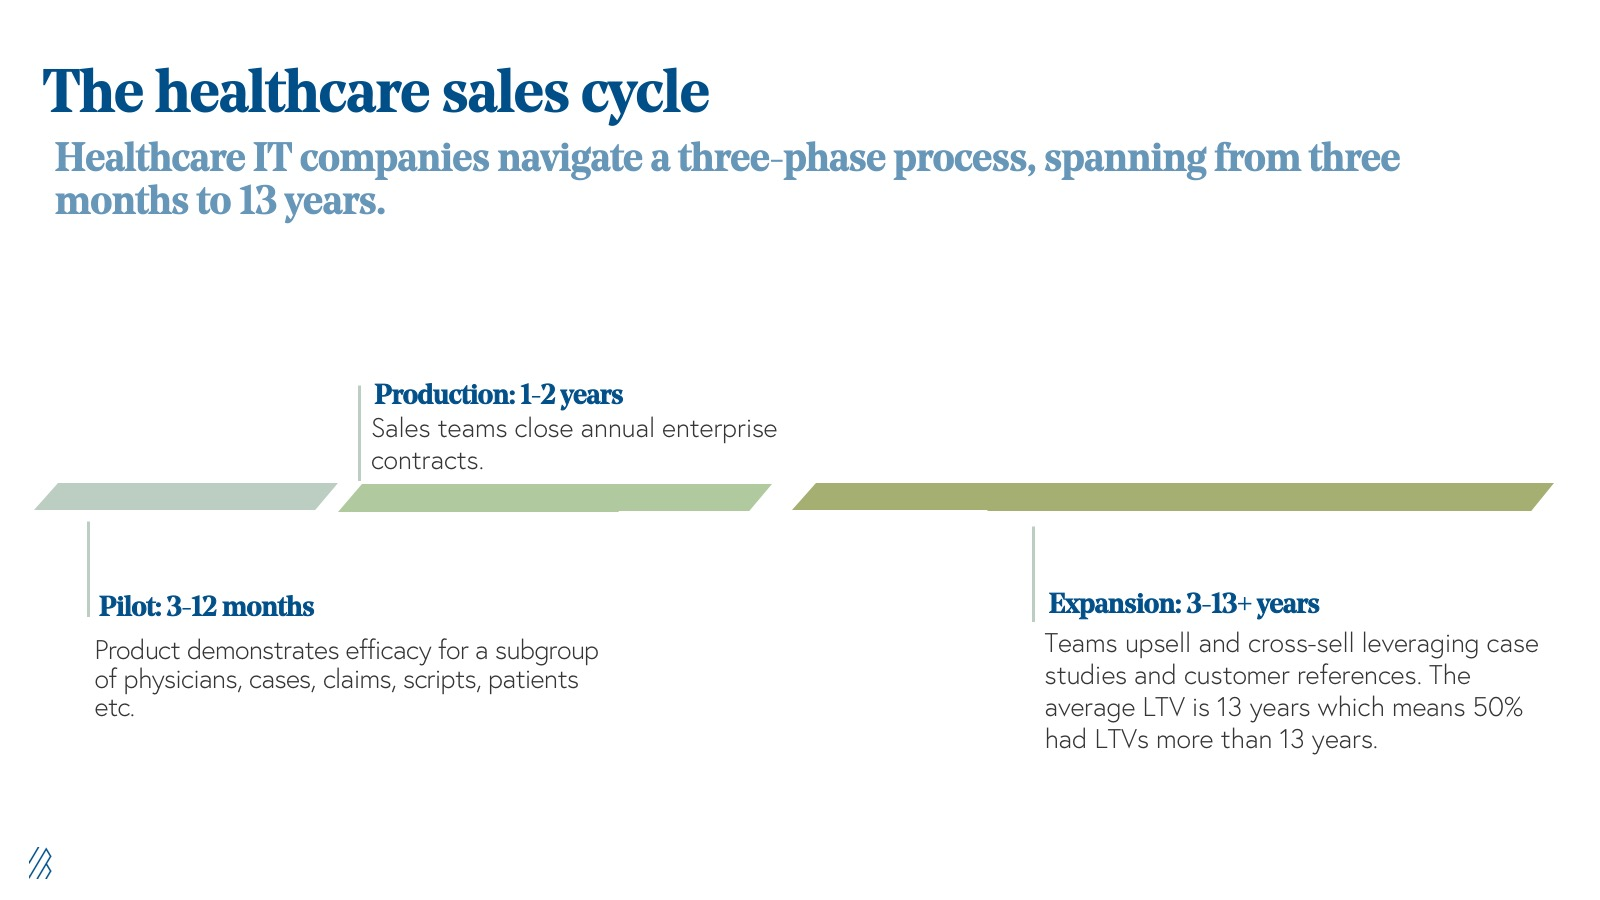 The healthcare sales cycle